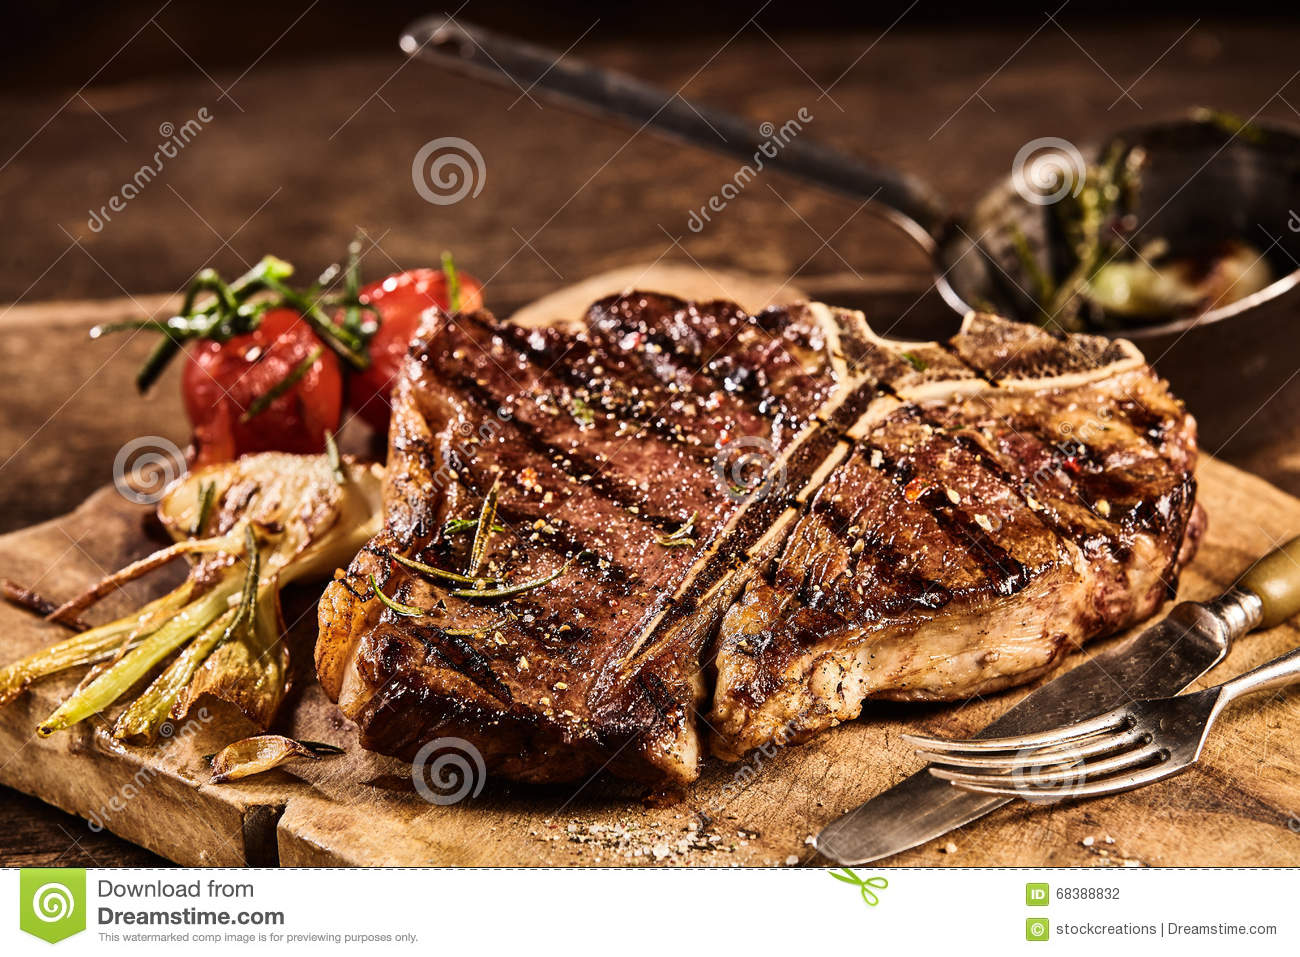 Prepared Grilled Porterhouse Steak With Fork And Knife Stock Photo ...